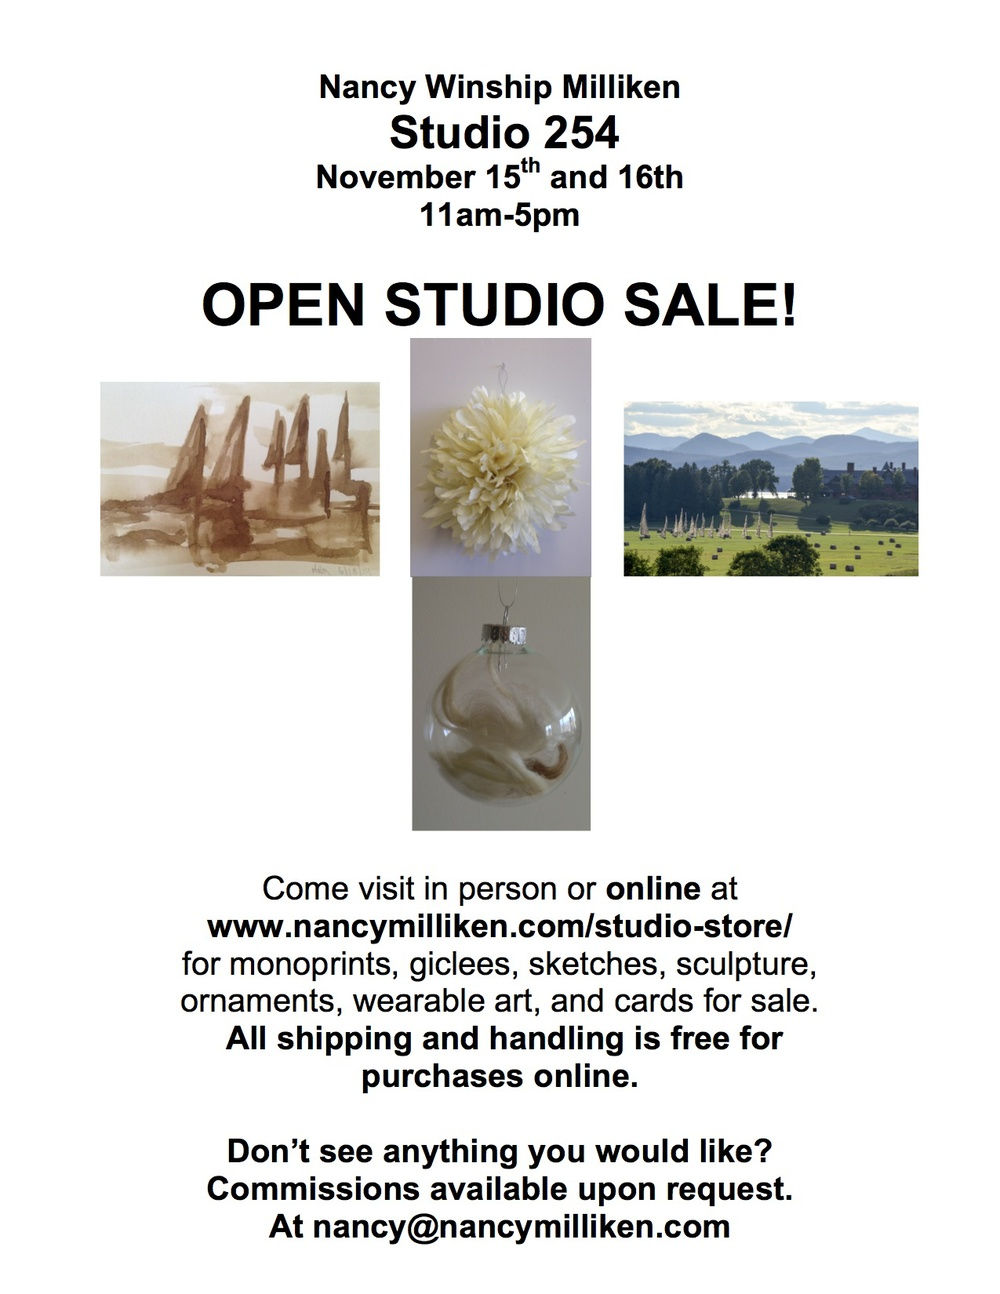 Open Studio Sale 2014 copy.jpg